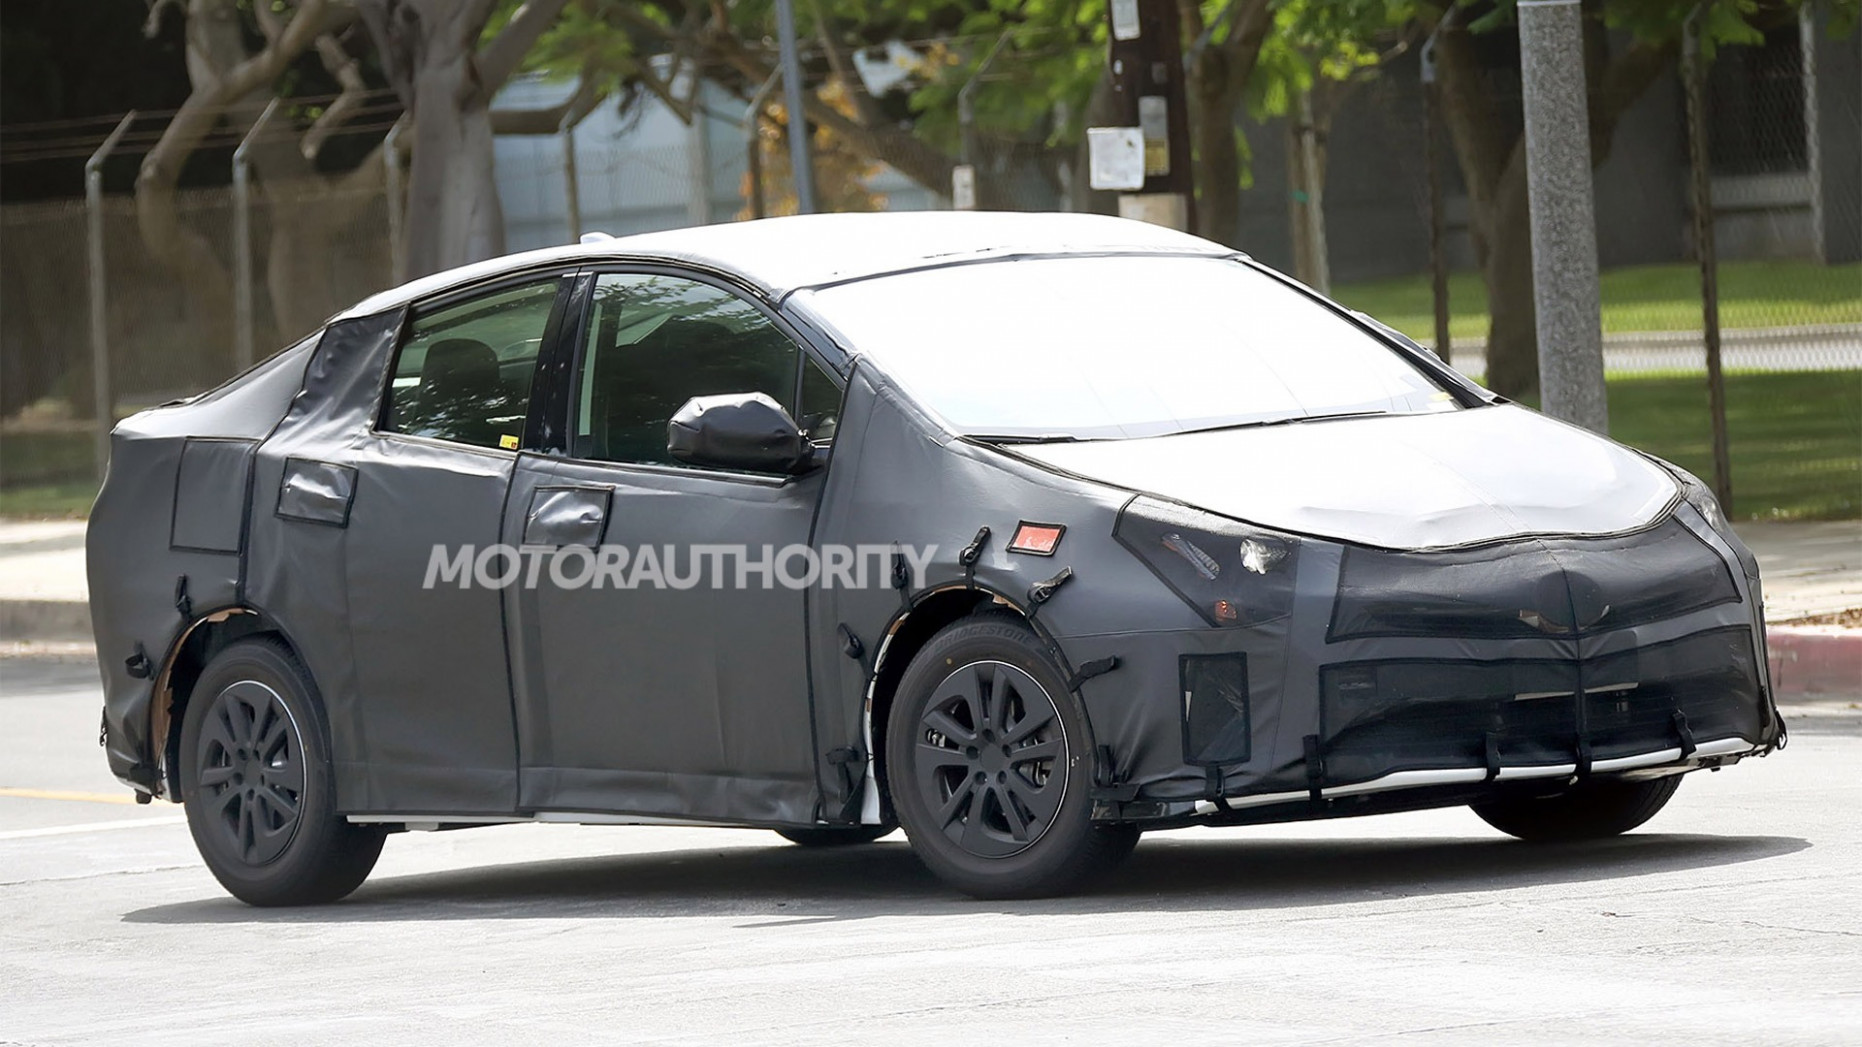 Specs and Review 2022 Spy Shots Toyota Prius